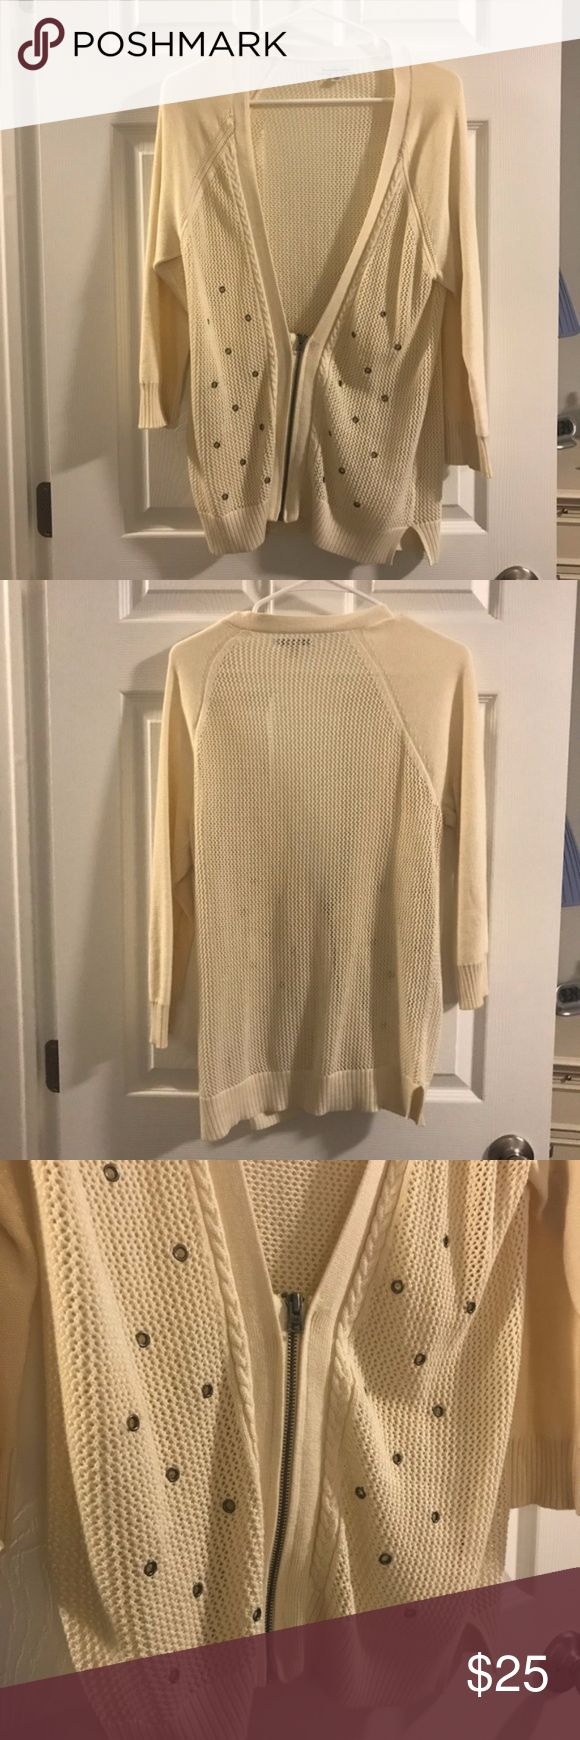 American Eagle Beige Zip Up Sweater Off white / beige colored American eagle sweater in excellent condition! Size large. Very soft and functional. American Eagle Outfitters Sweaters